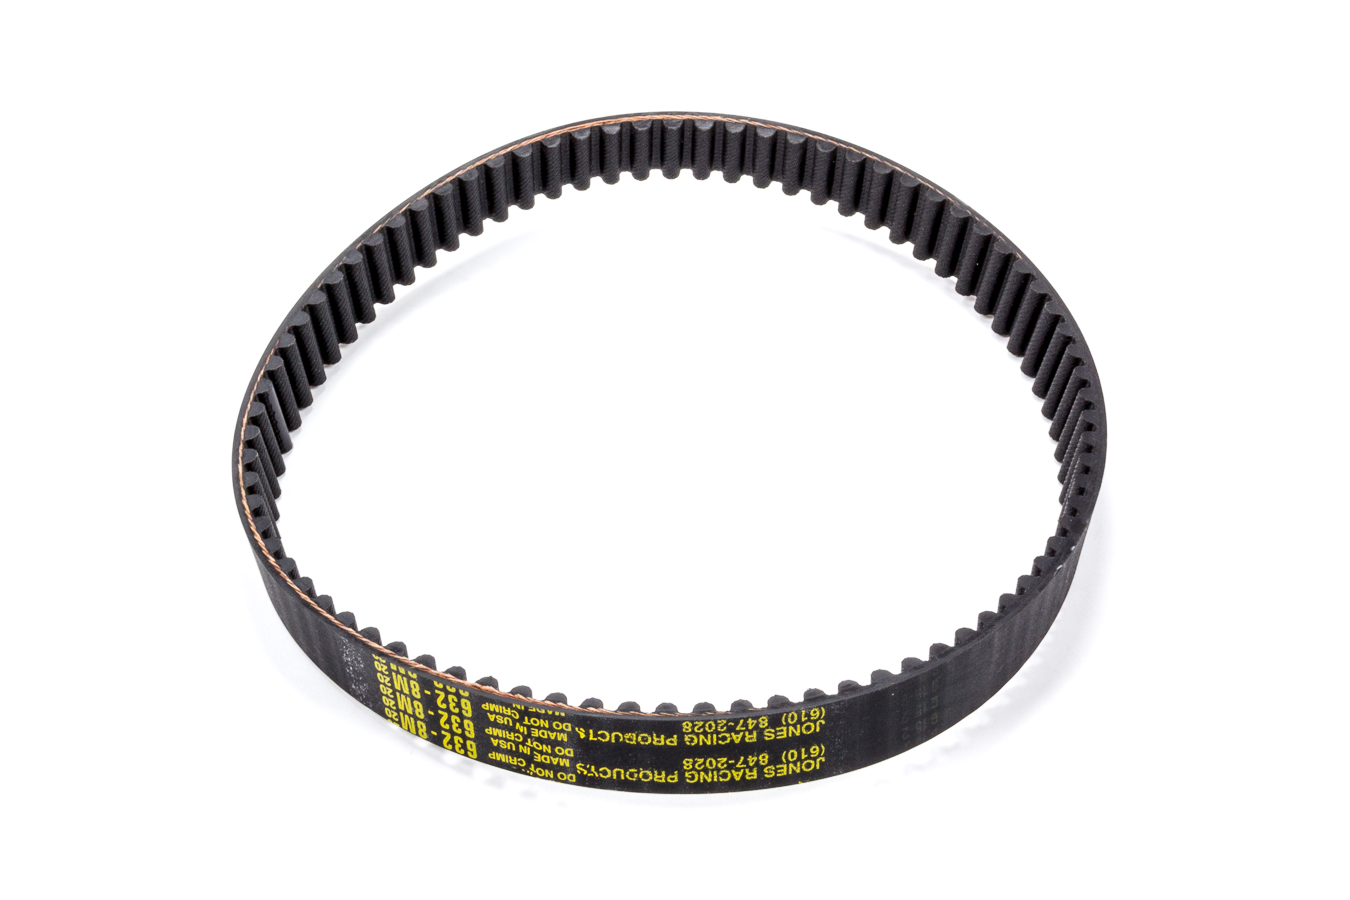 BEMONOC Pack of 2pcs HTD 3M Round Rubber Belts 159mm Length 53 Teeth 15mm Width Closed-loop Industrial Drive Belts